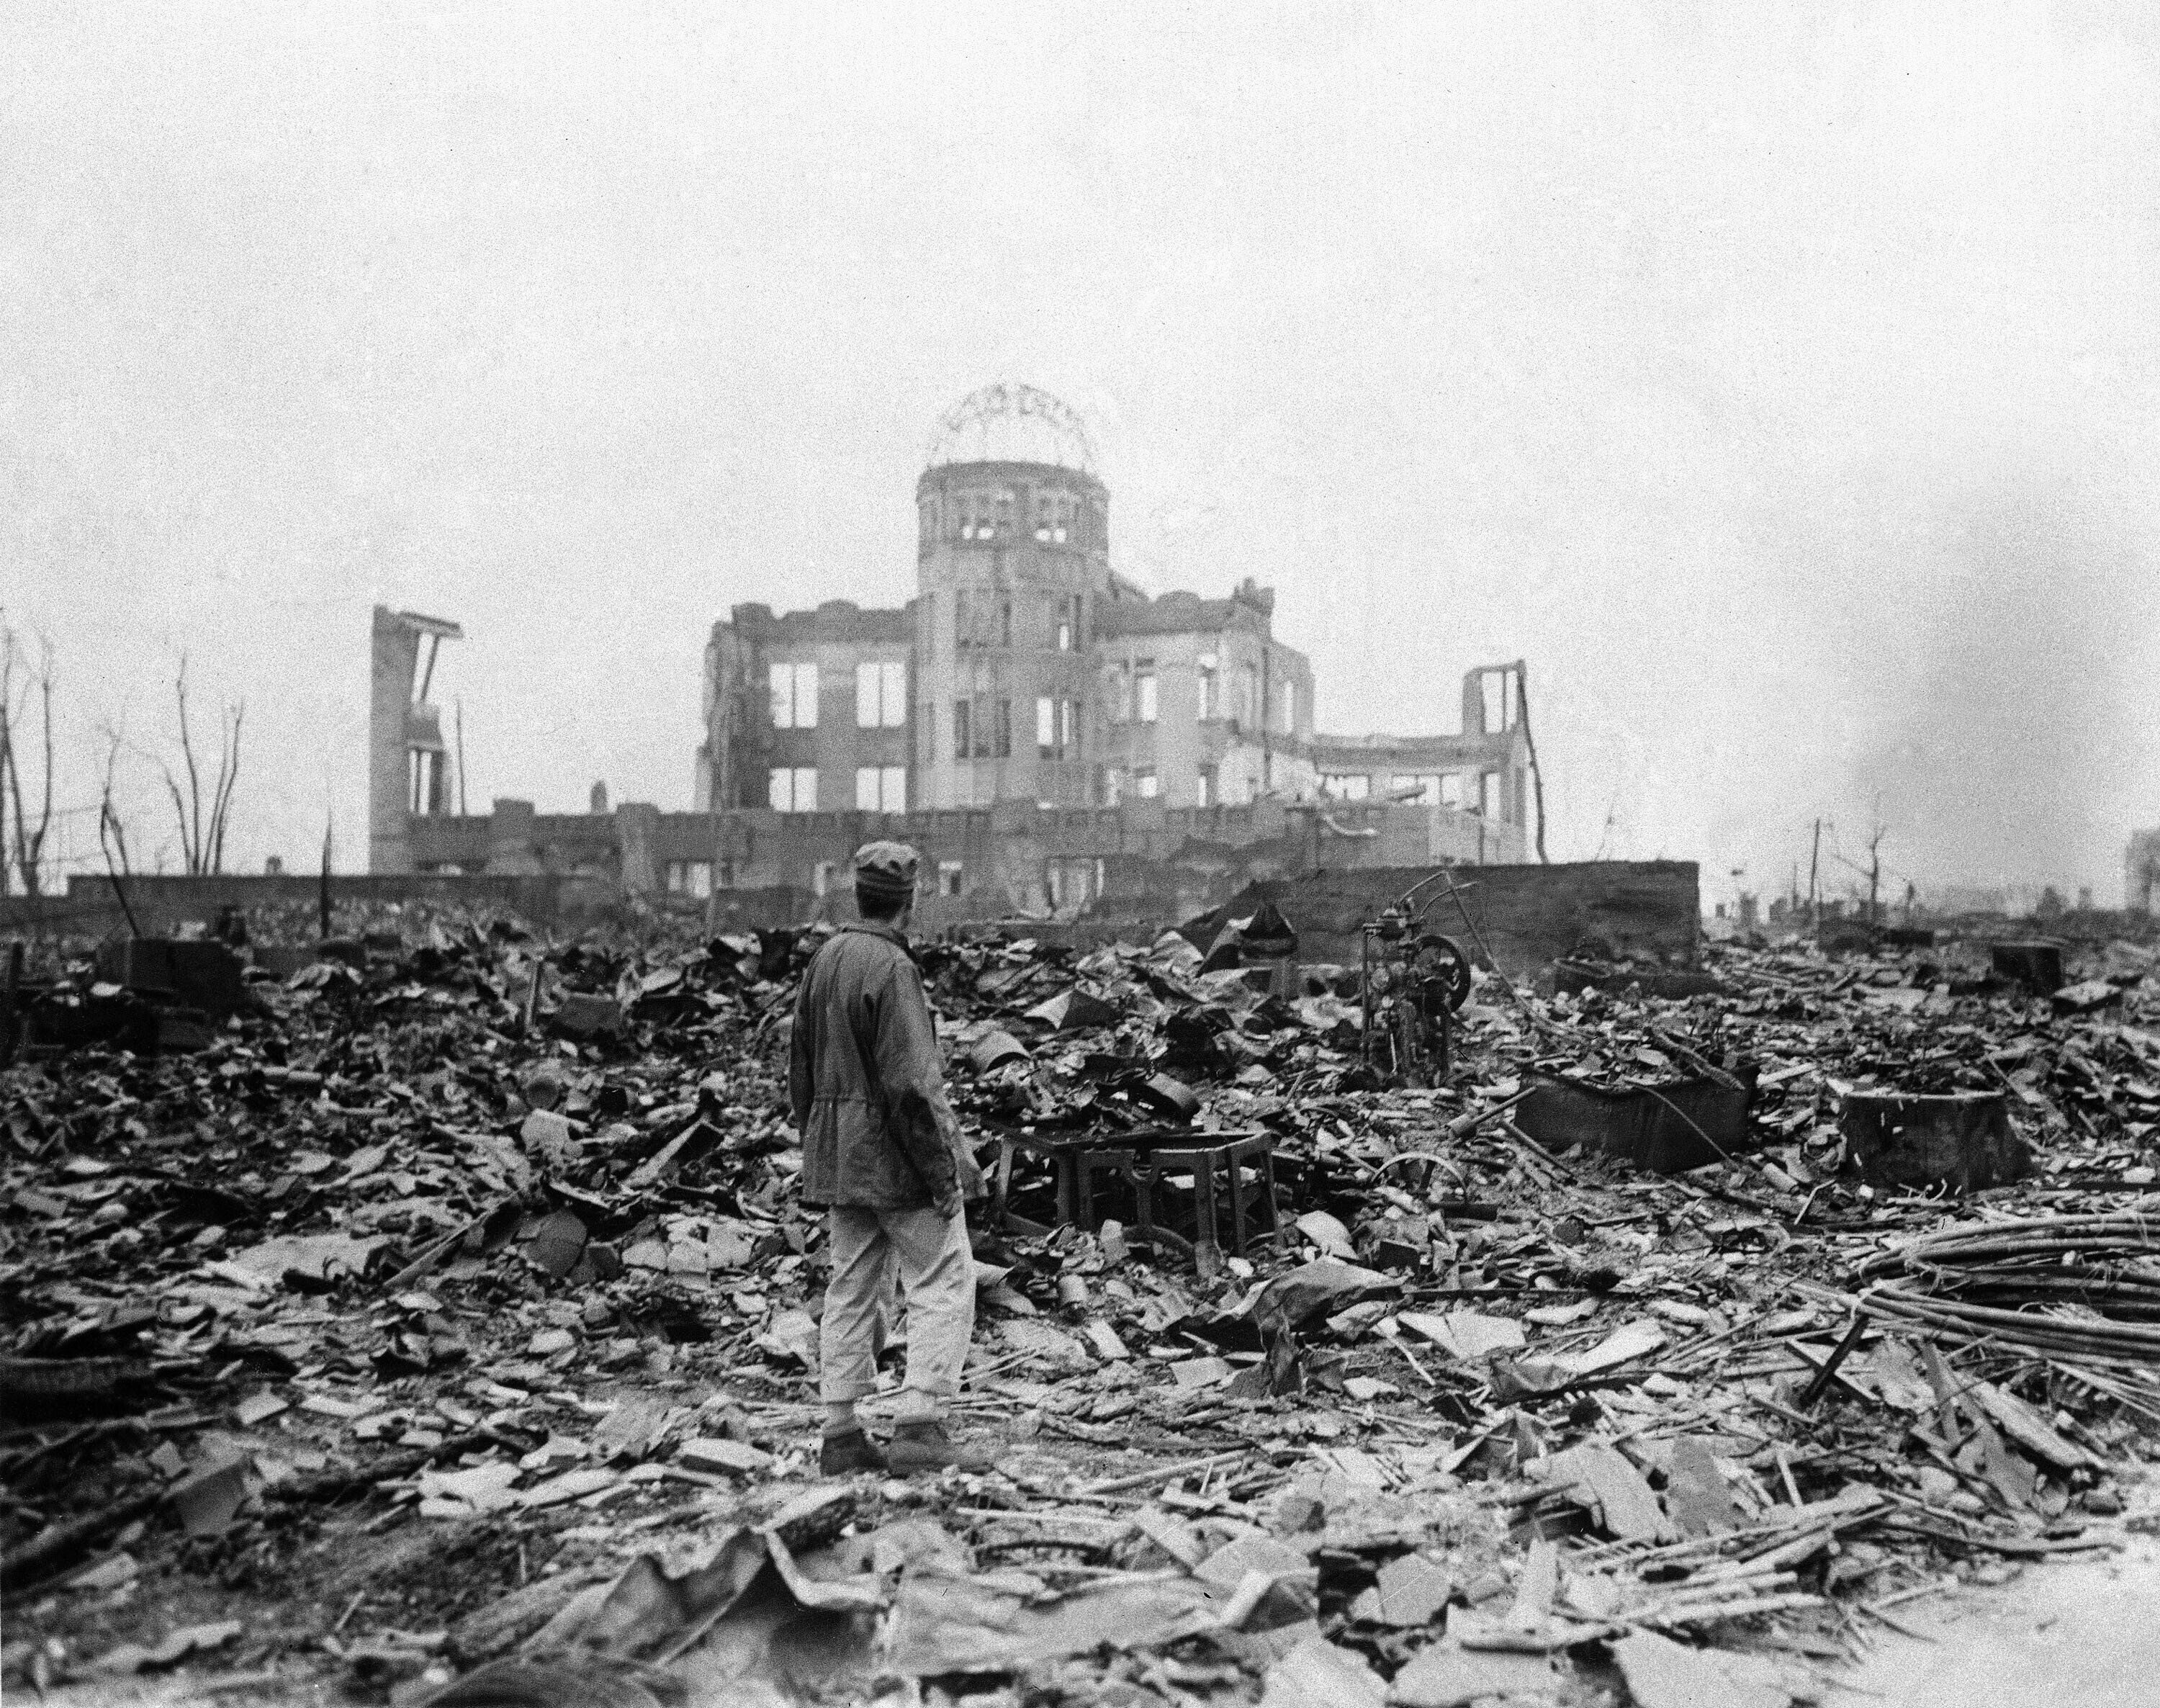 In this Sept. 8, 1945, file photo, an allied correspondent stands in a sea of rubble before the shell of a building that once was a movie theater in Hiroshima, western Japan, a month after the first atomic bomb ever used in warfare was dropped by the U.S. to hasten Japan's surrender. (AP Photo)